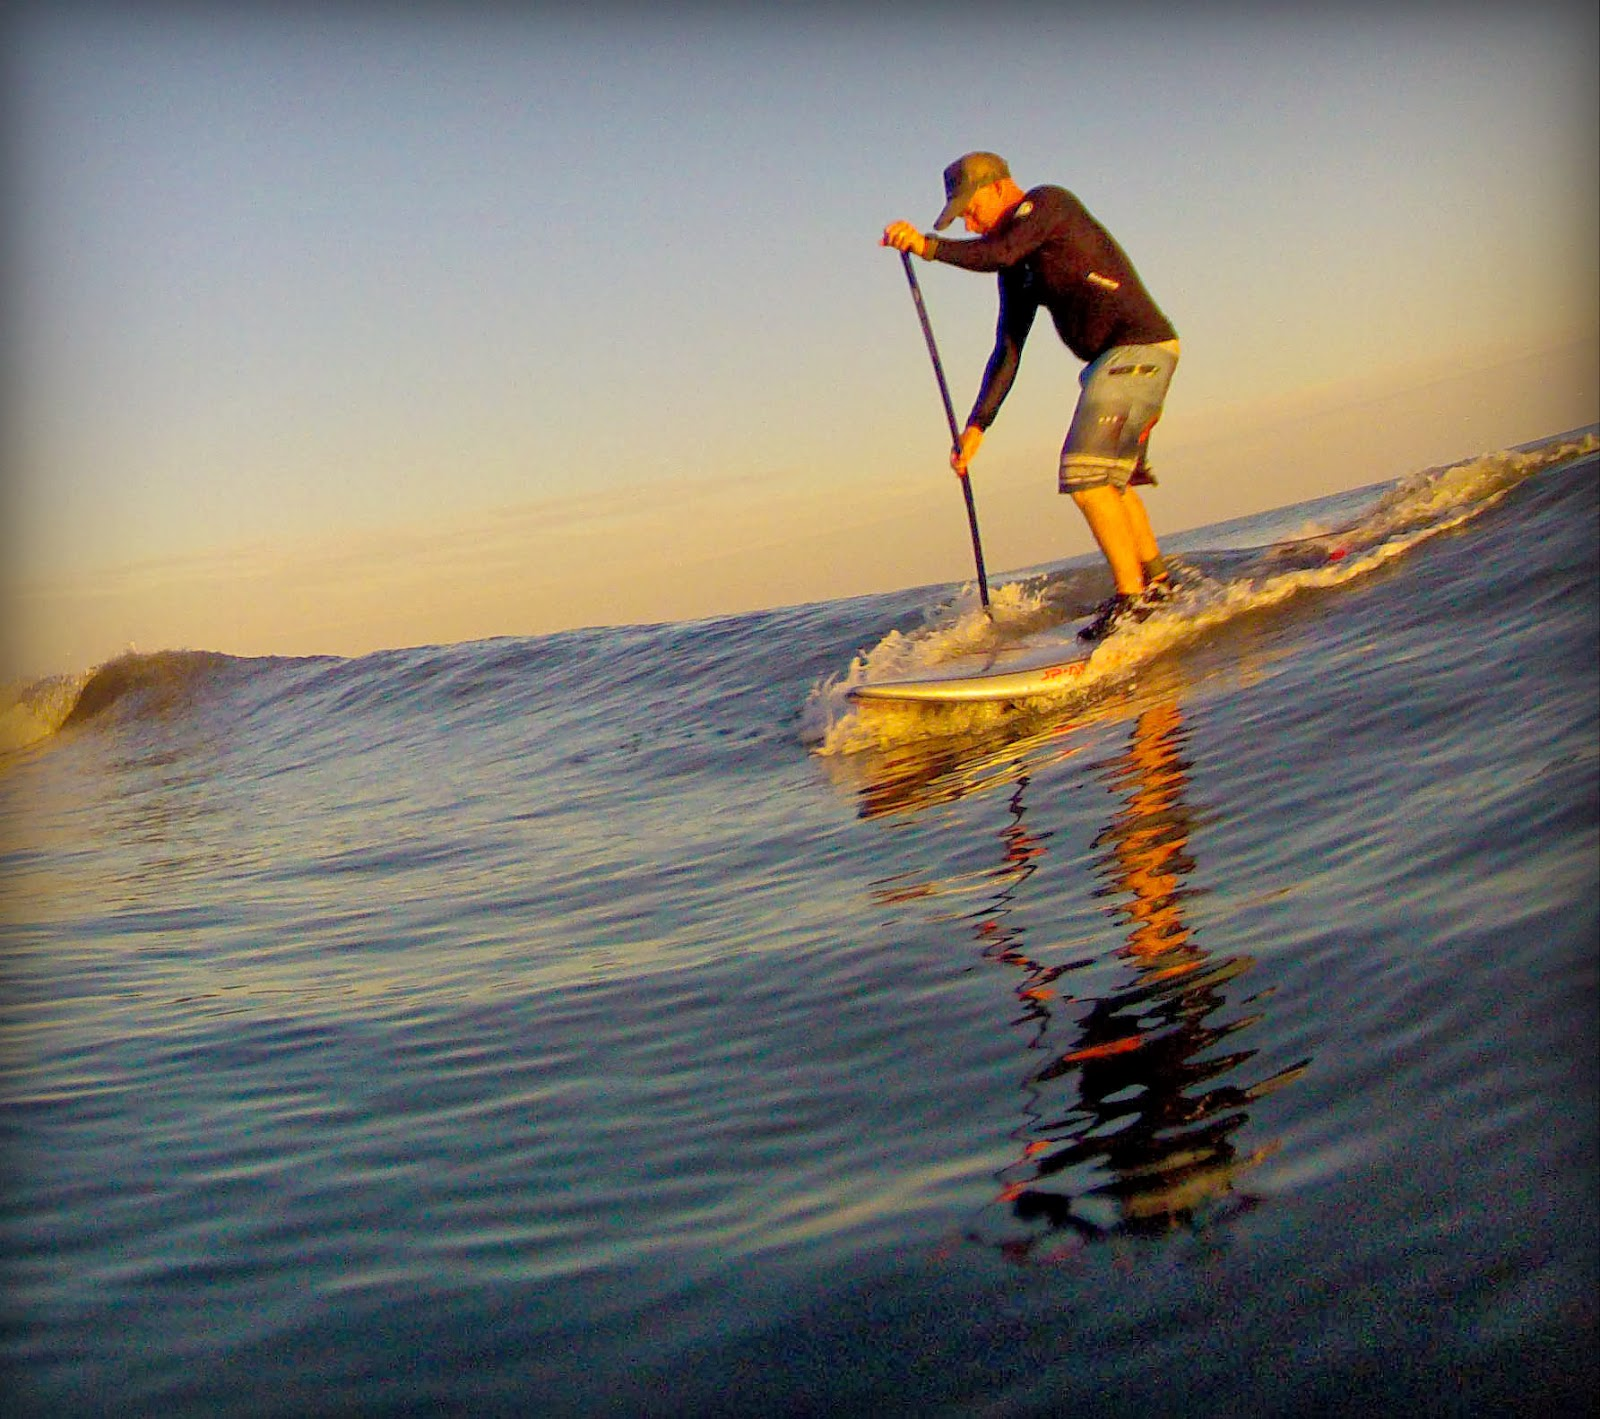 atlantic paddle surfing sunset sup session bc